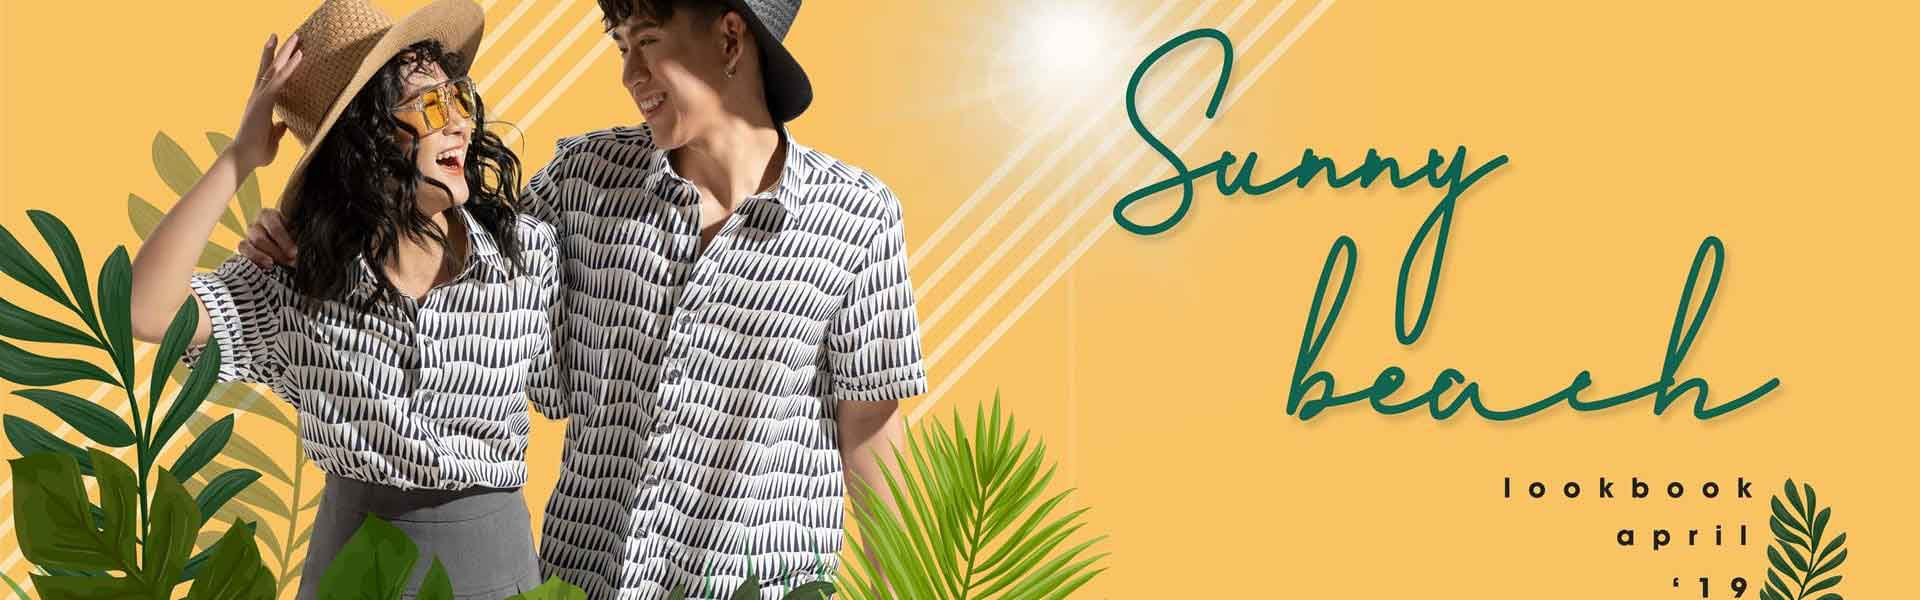 TheSummerPolo-Website-Cover-summer